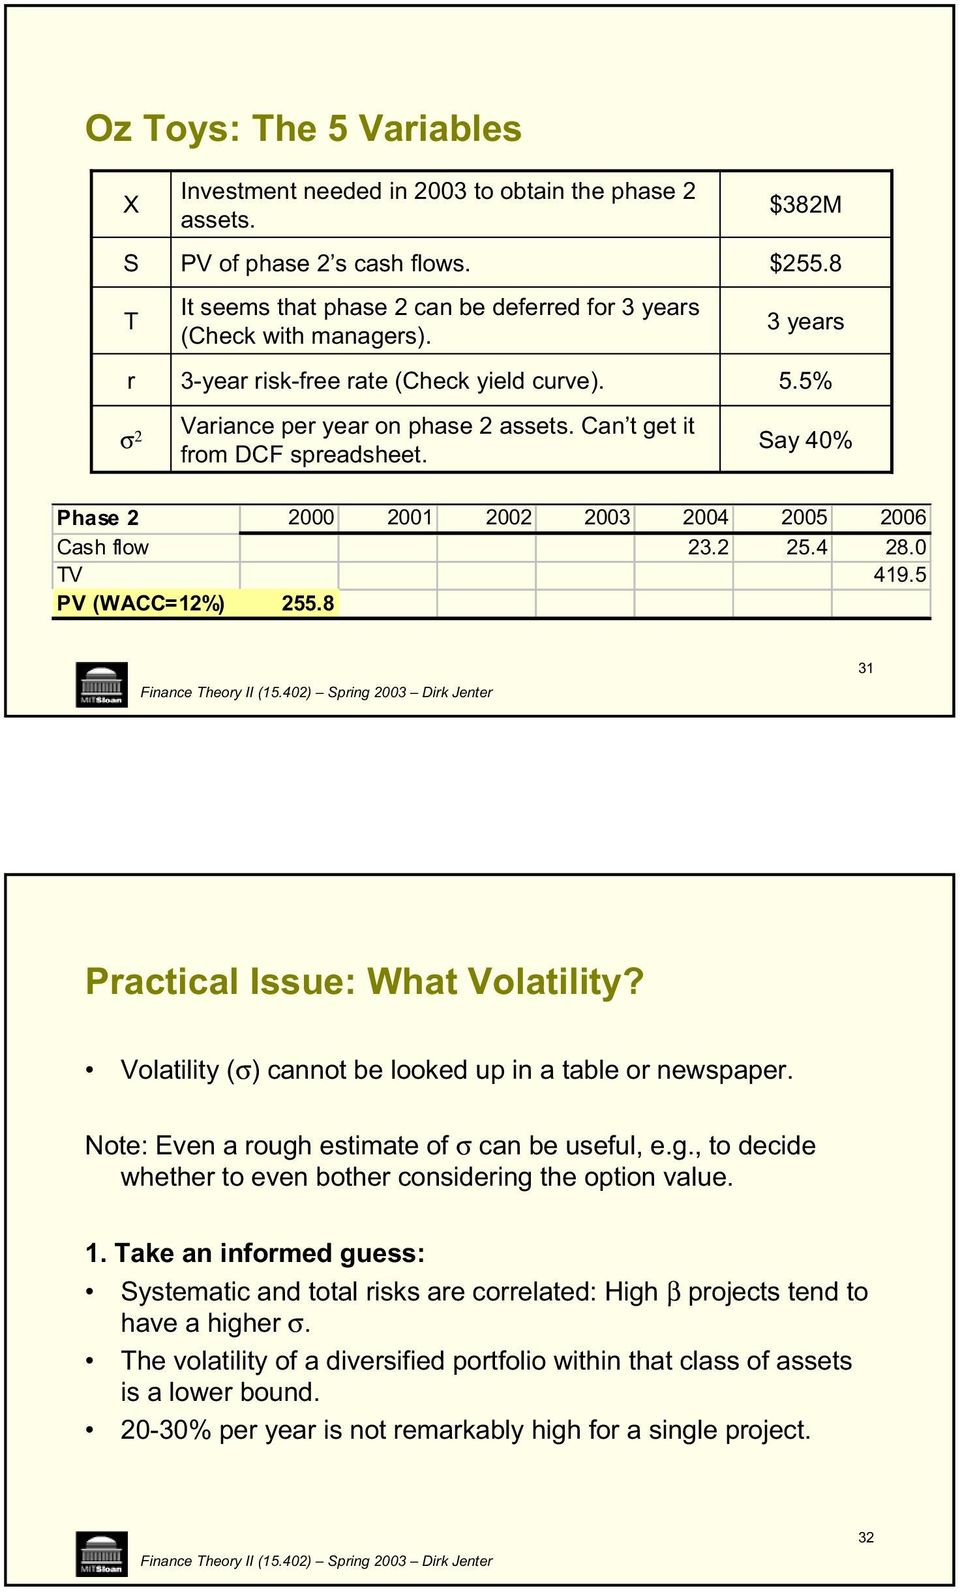 2 25.4 28.0 TV 419.5 PV (WACC=12%) 255.8 31 Practical Issue: What Volatility? Volatility ( σ) cannot be looked up in a table or newspaper. Note: Even a rough